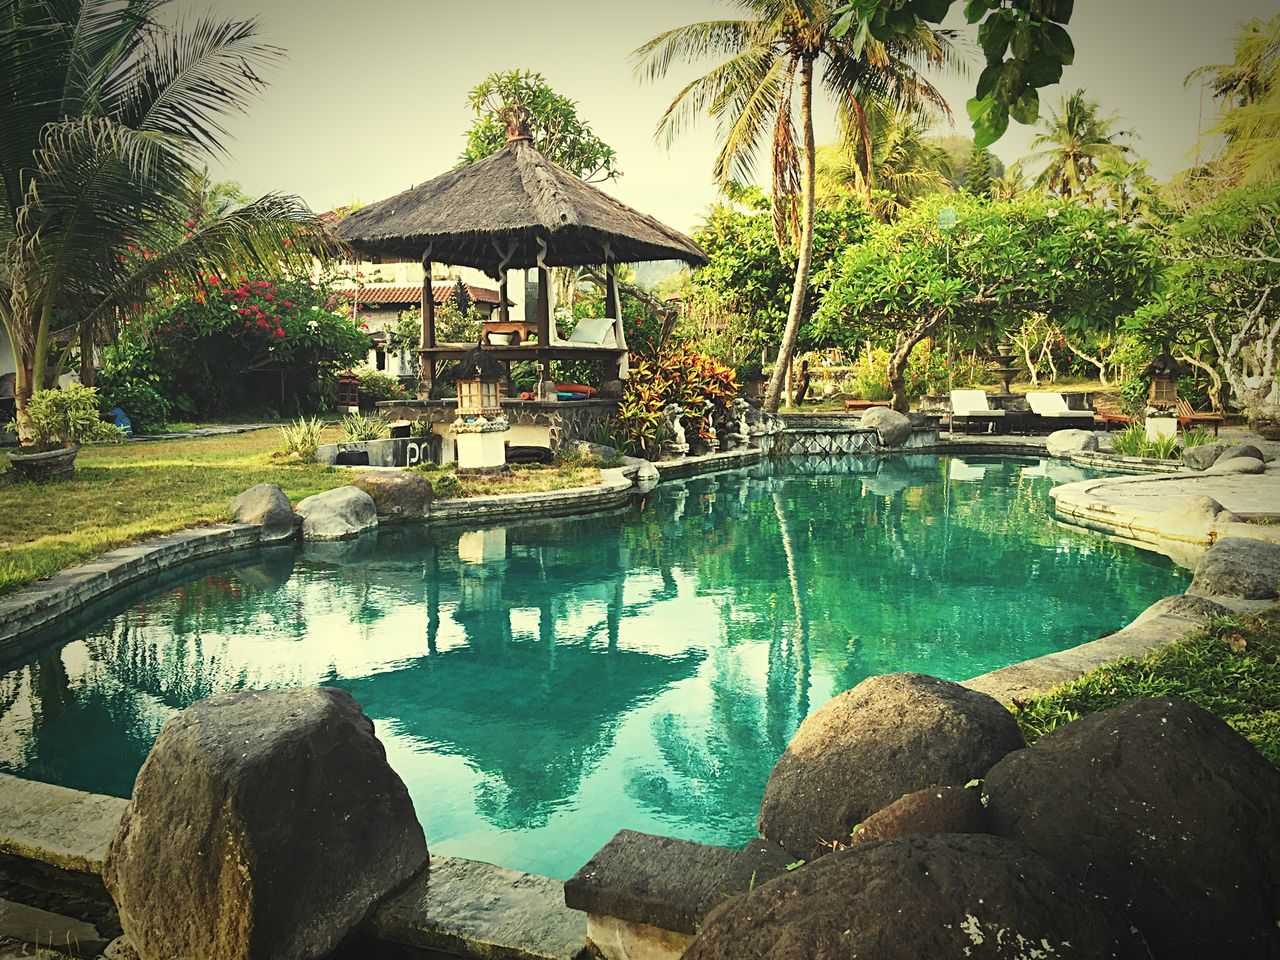 Falling in love with Bali... Bali Eat, Pray,Love INDONESIA IPhoneography Iphone6plus Snapshot Travel Exotic Bali, Indonesia Candidasa Bali Outdoors Iphone6 Relaxing Enjoying Life Resort Pool Poolside Holiday Landscapes With WhiteWall